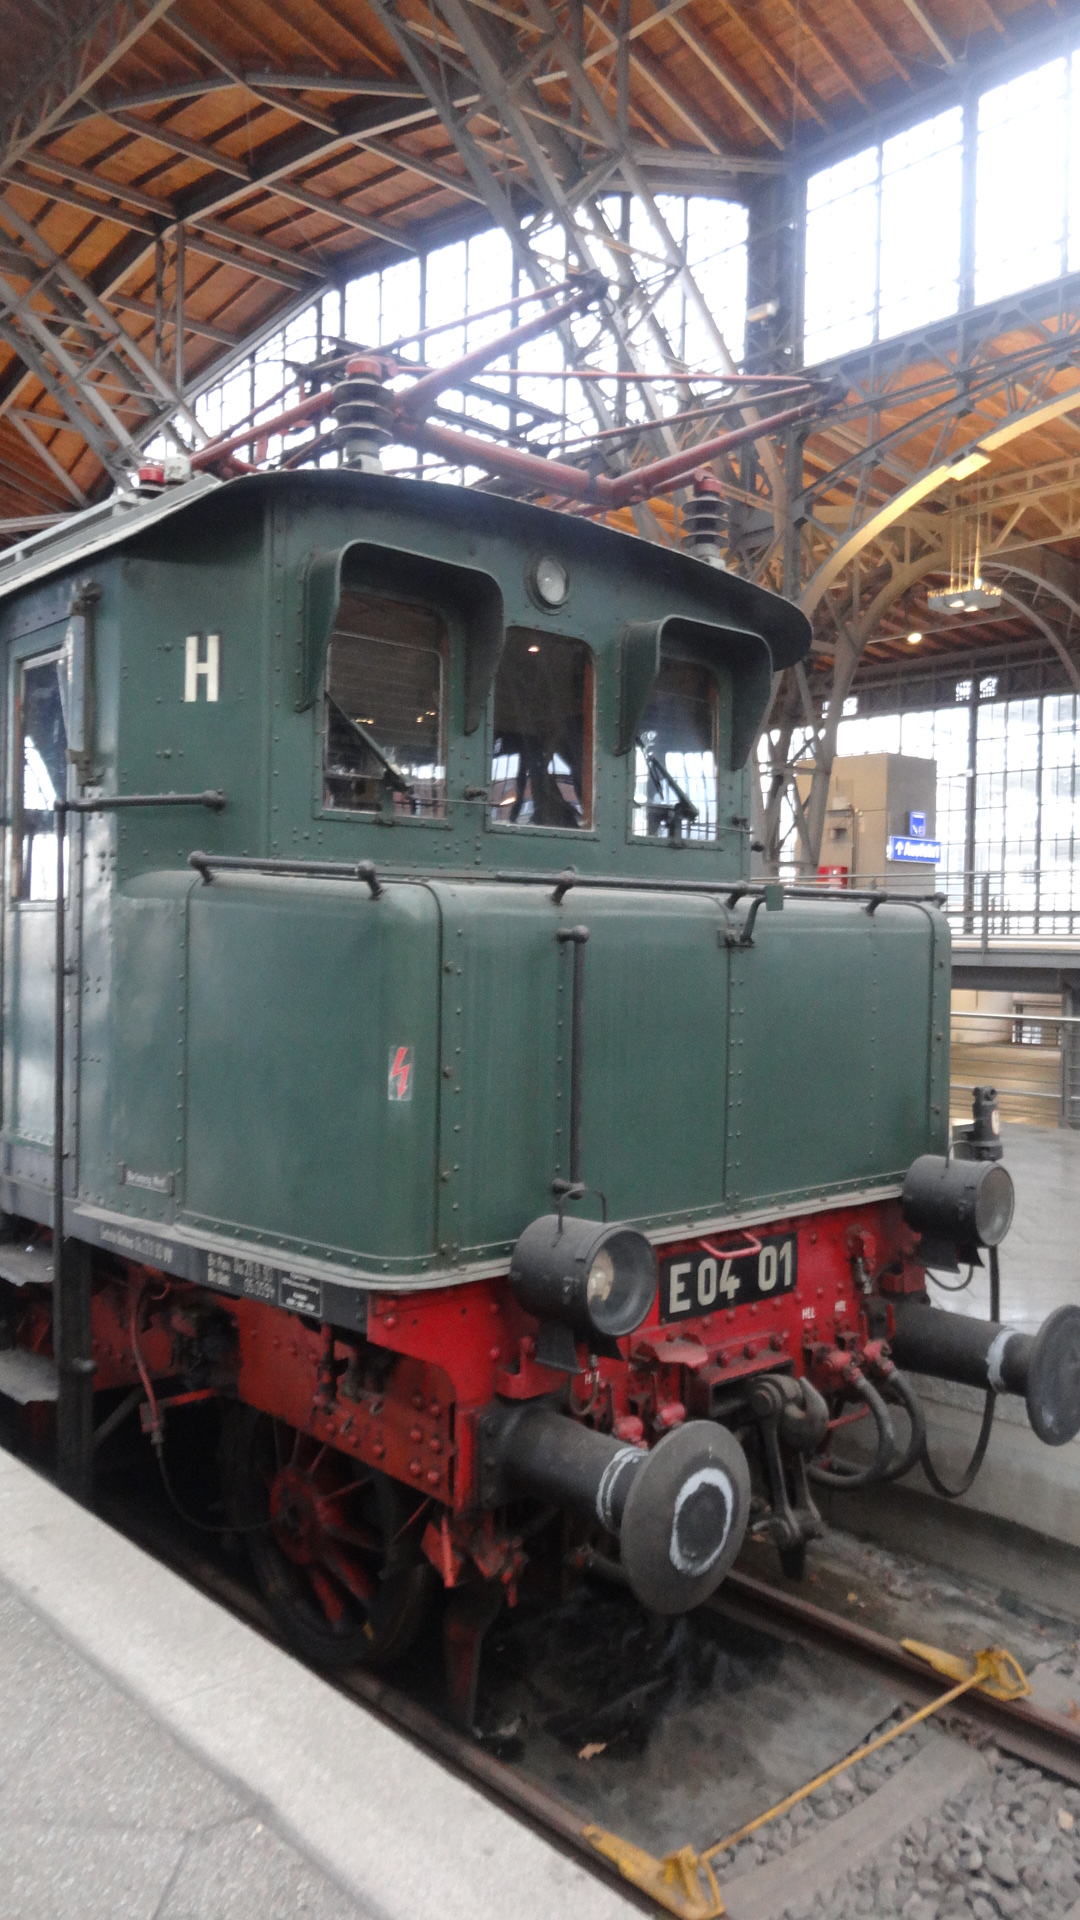 historic electronic locomotive E04-01